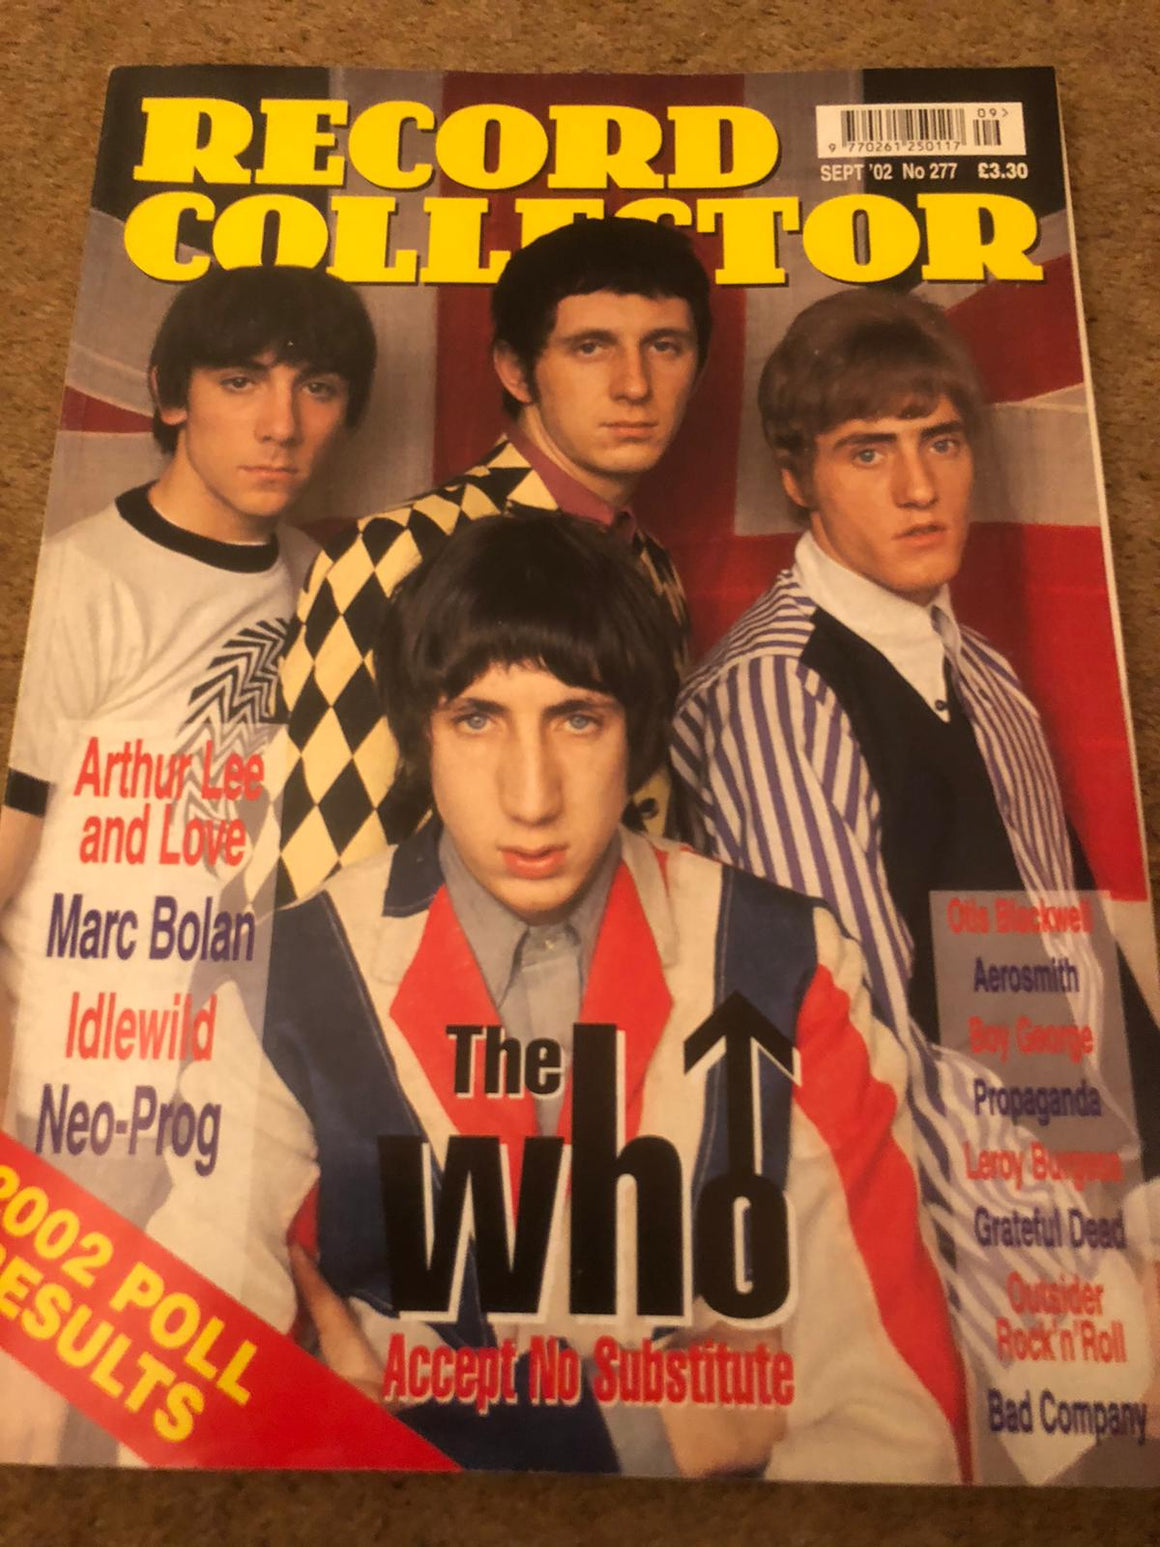 UK Record Collector September 2002 The Who Roger Daltrey Pete Townshend